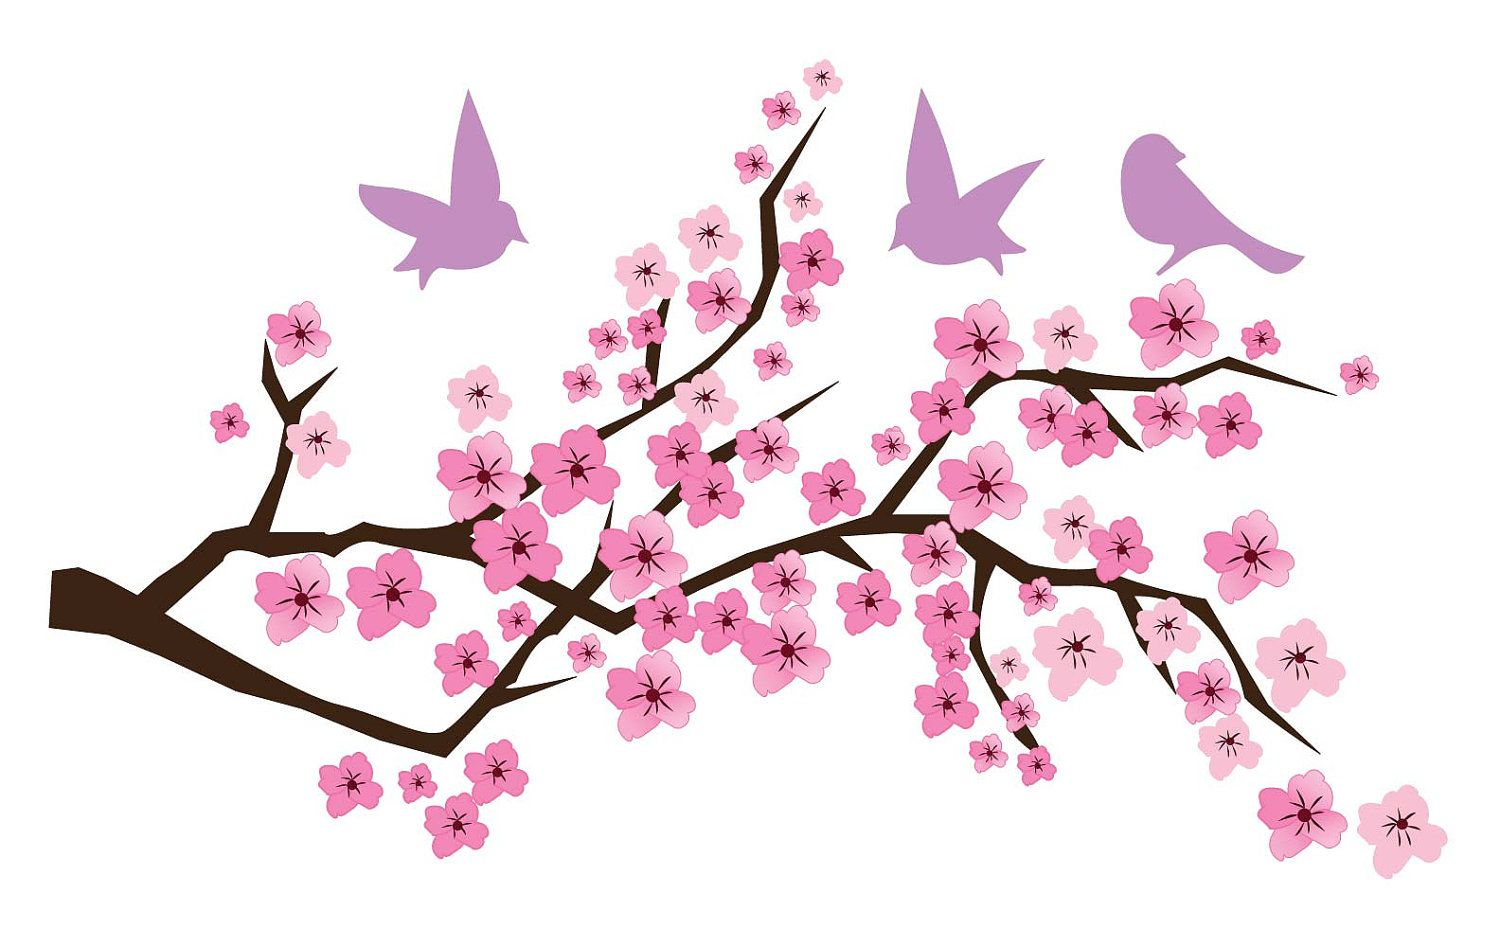 Pin By Shirley Sumner On Projects To Try Cherry Blossom Art Cherry Blossom Vector Tree Art